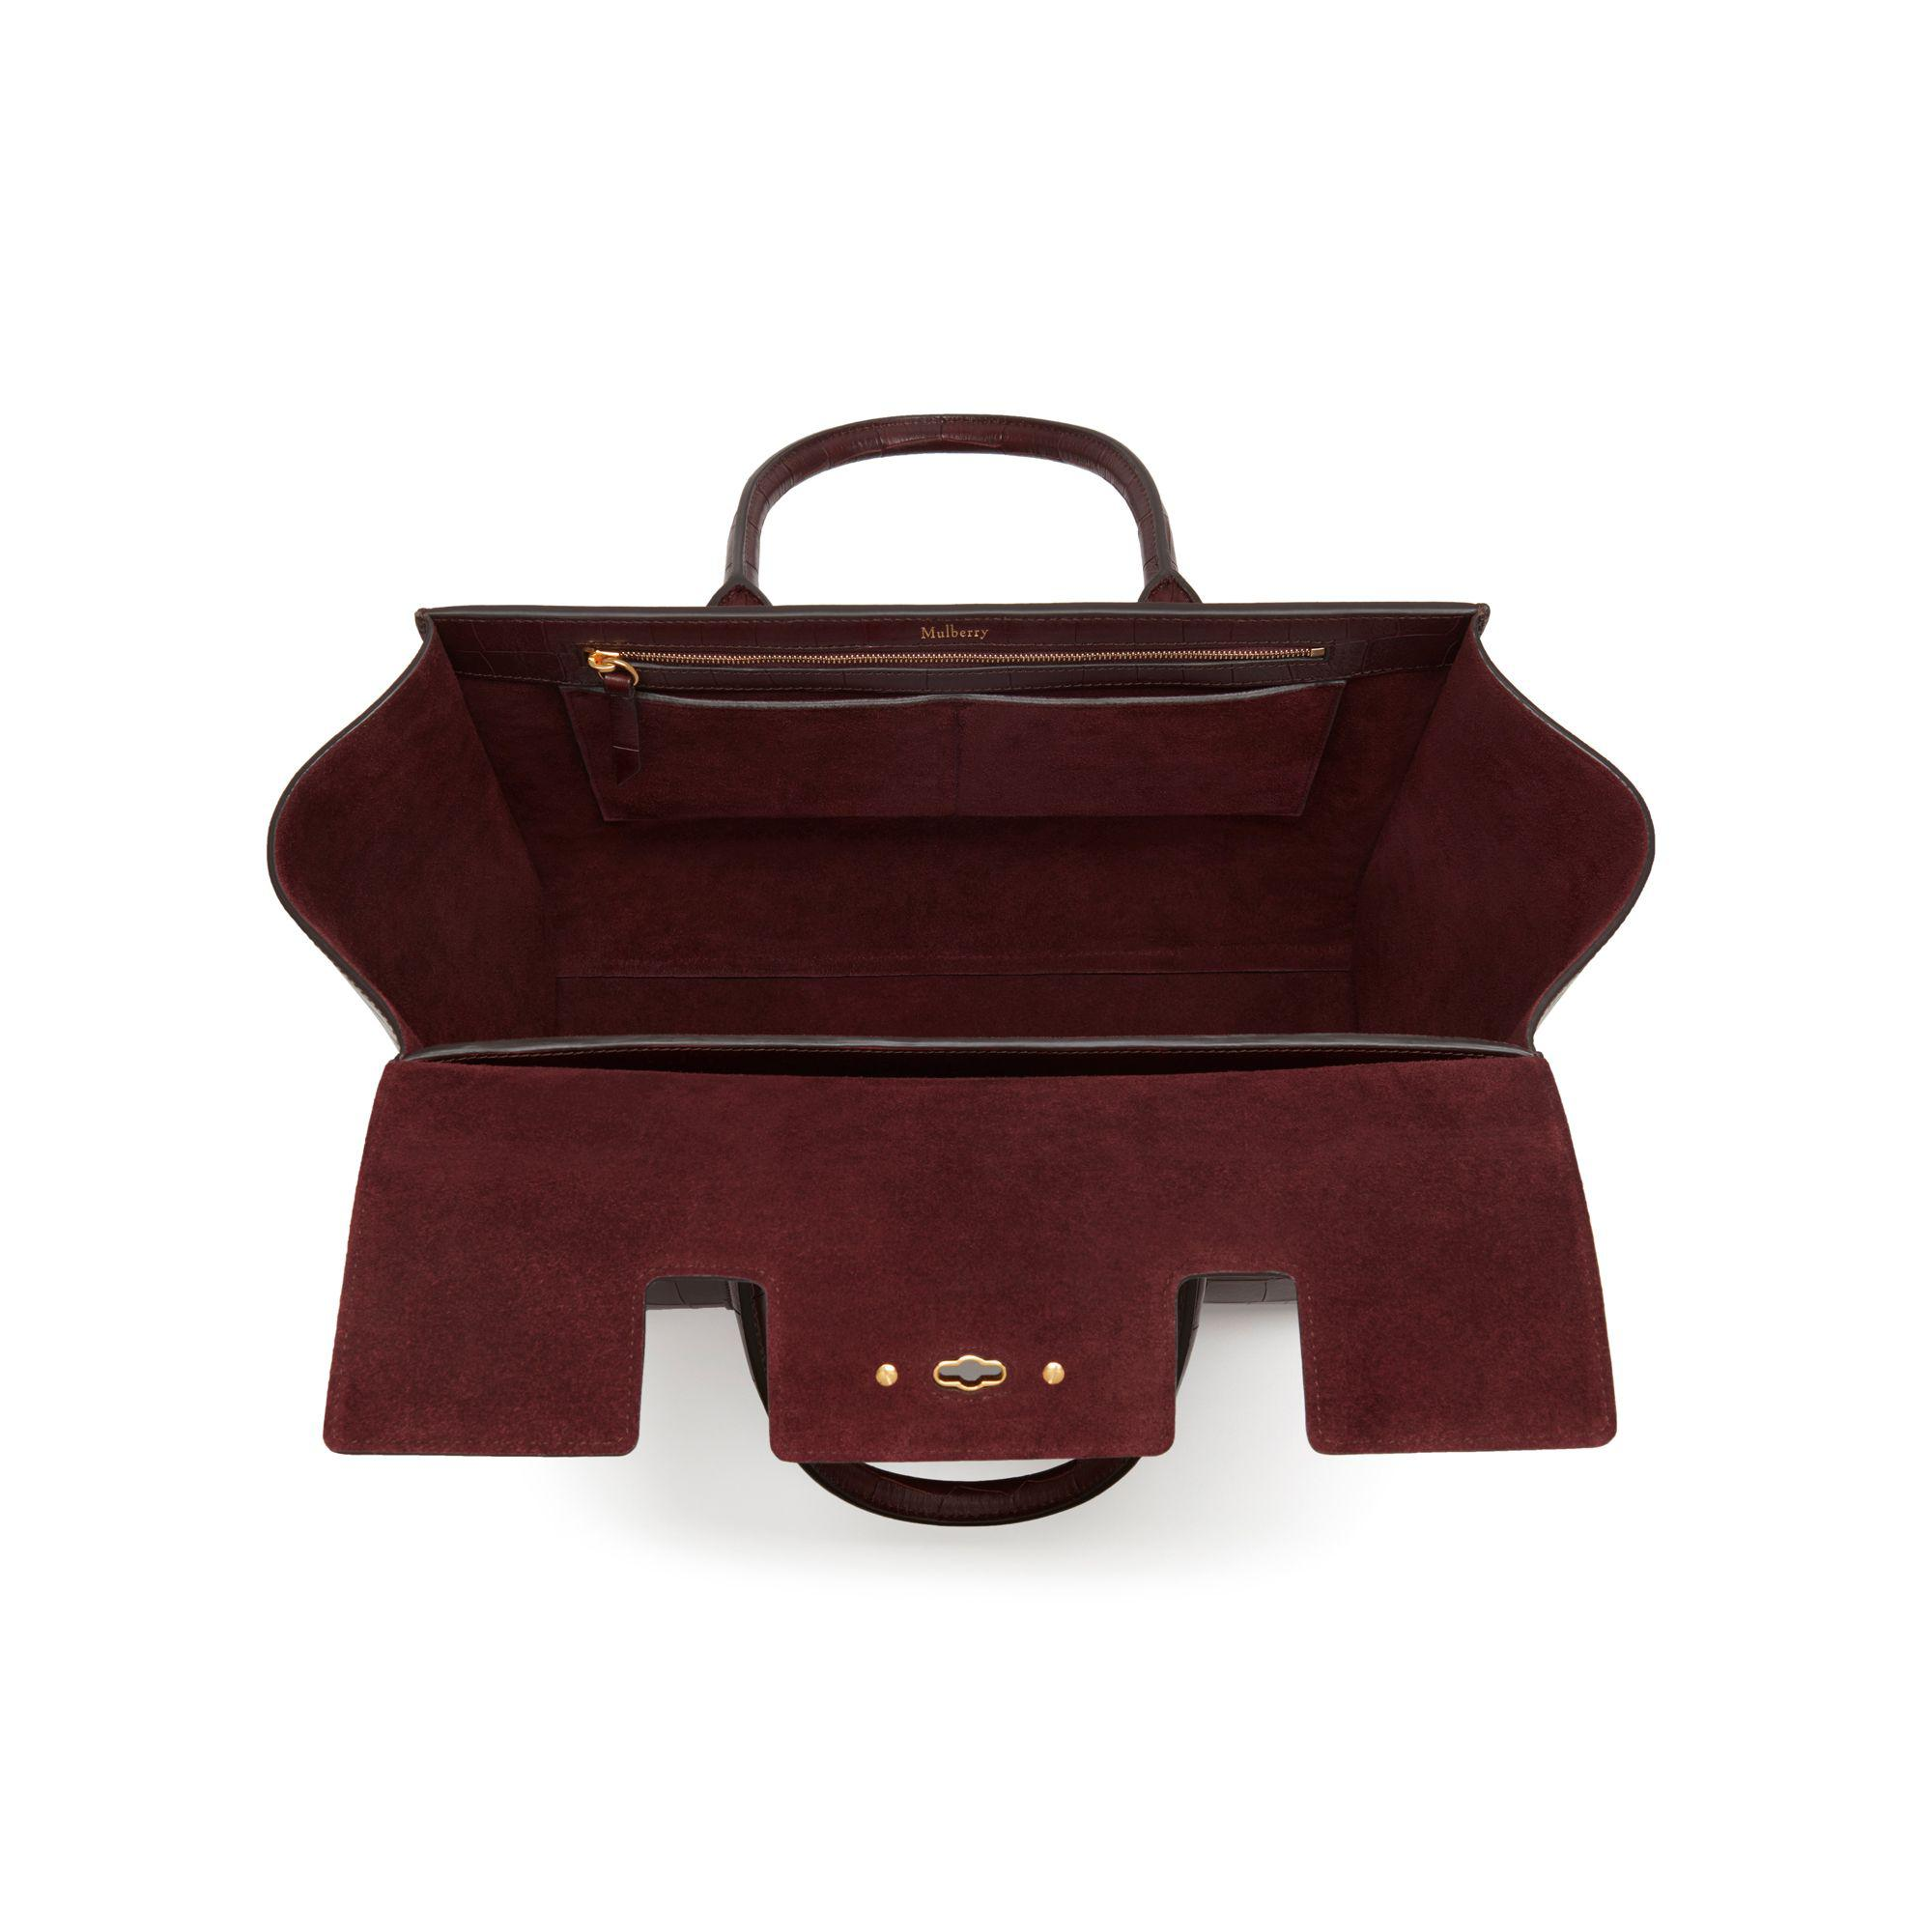 08d2f490418d Mulberry Bayswater With Strap - Lyst